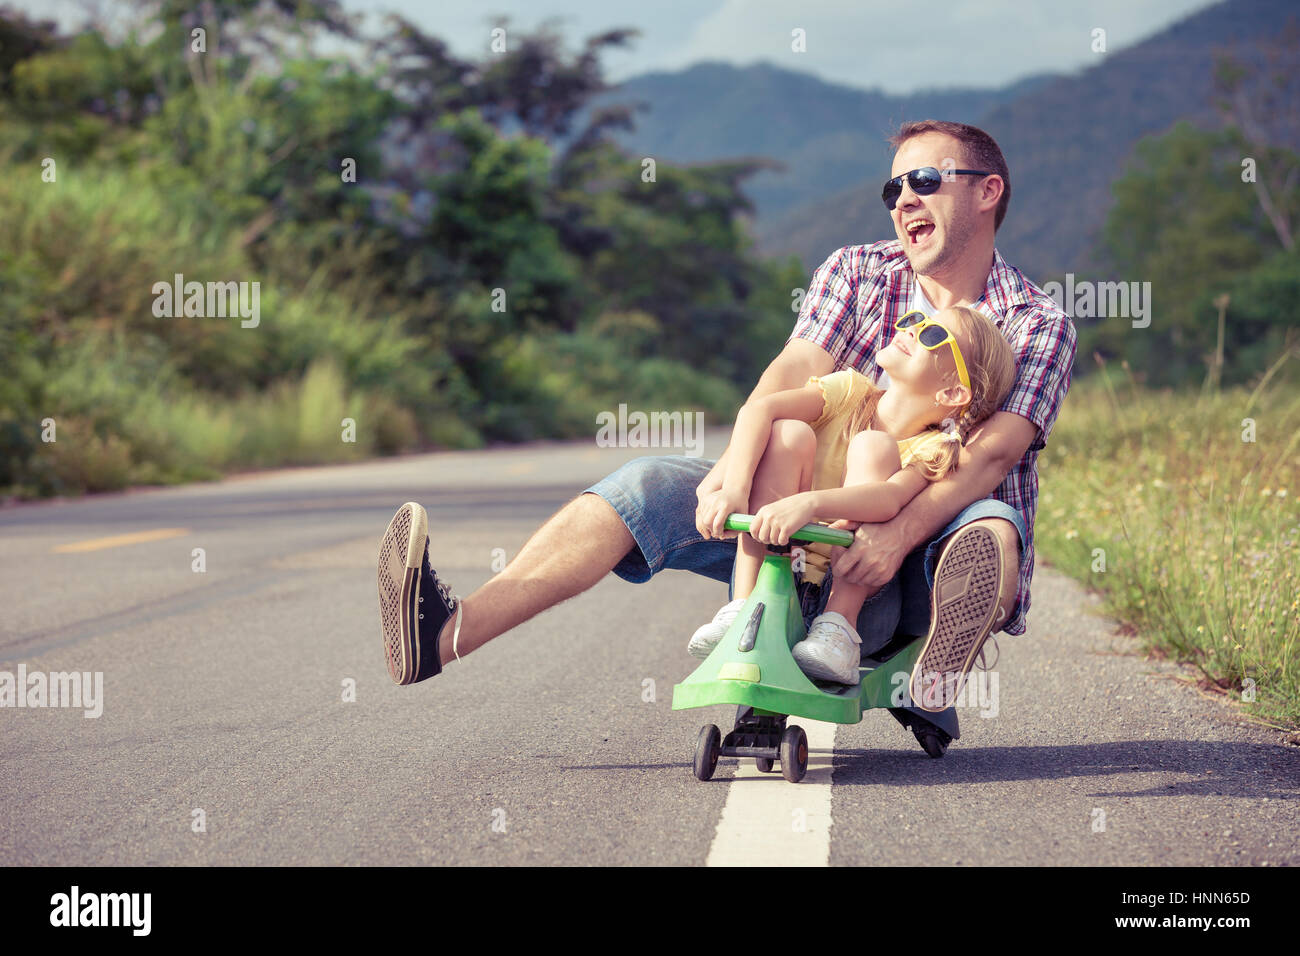 Father and son playing in the park at the day time. - Stock Image